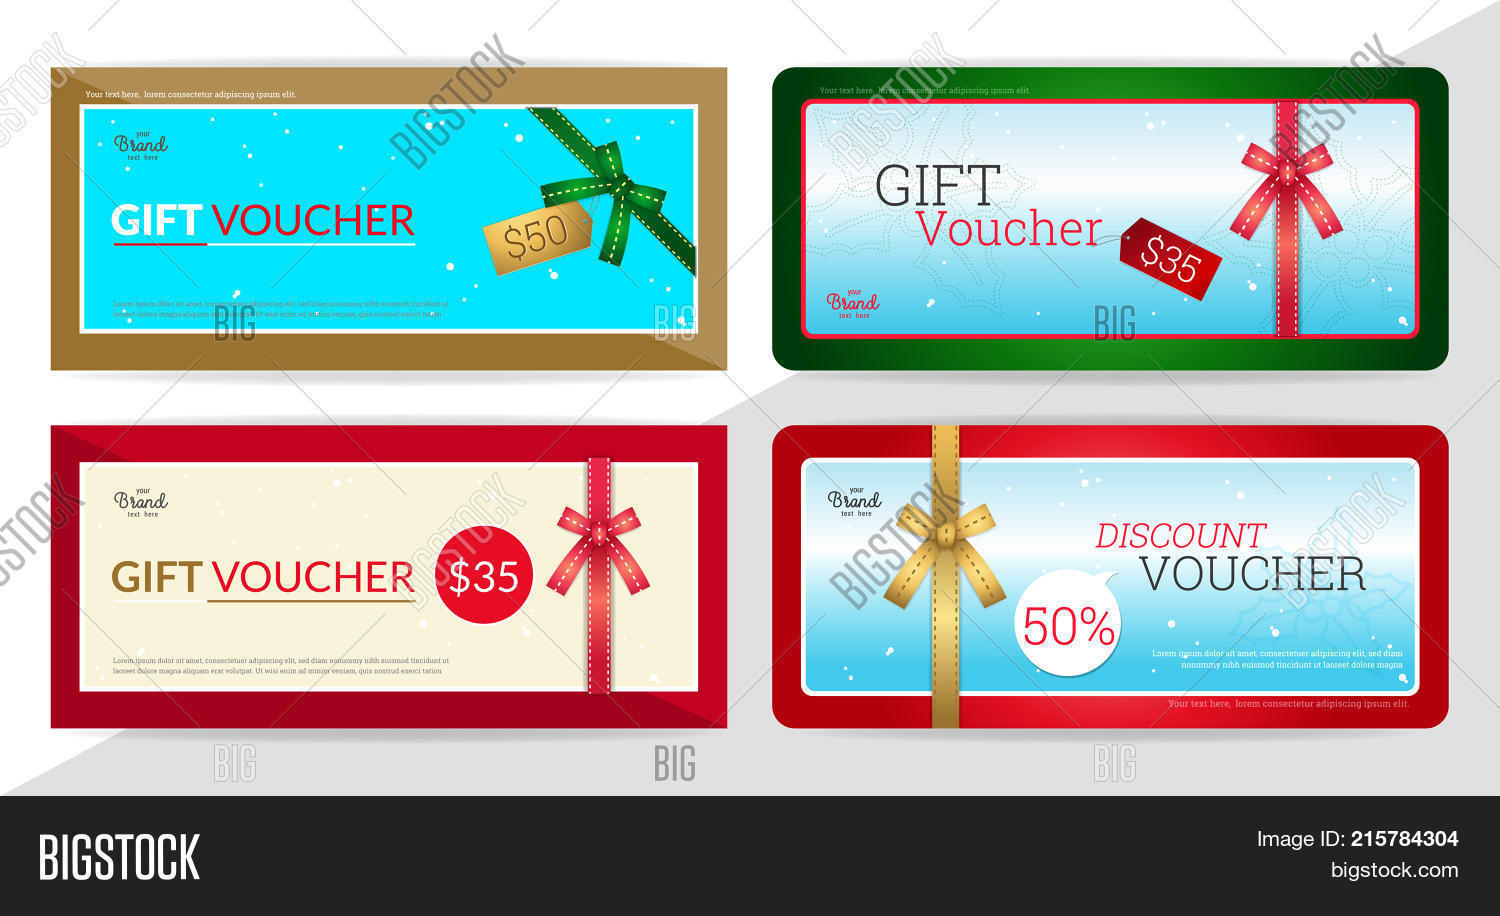 Gift Certificate Vector & Photo (Free Trial) | Bigstock